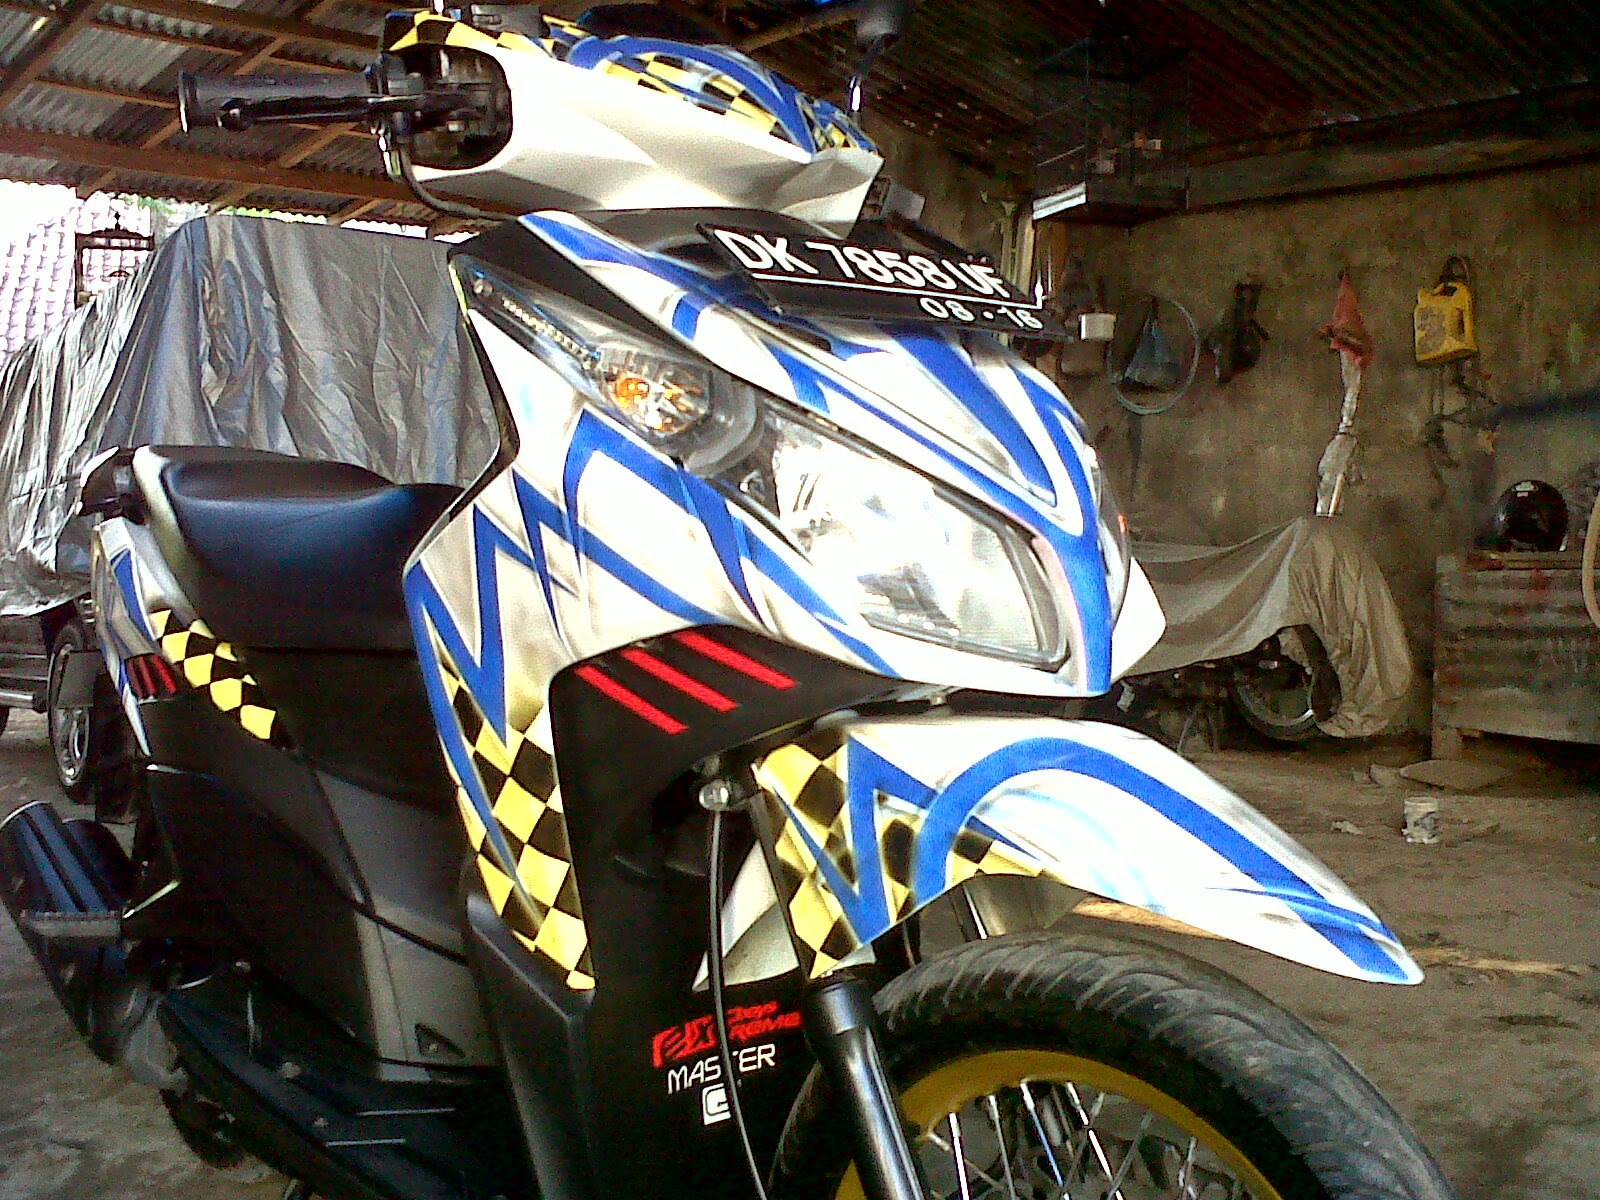 Modifikasi-Airbrush-Vario-Techno-modifikasi-vario-techno-2010-5860 ...